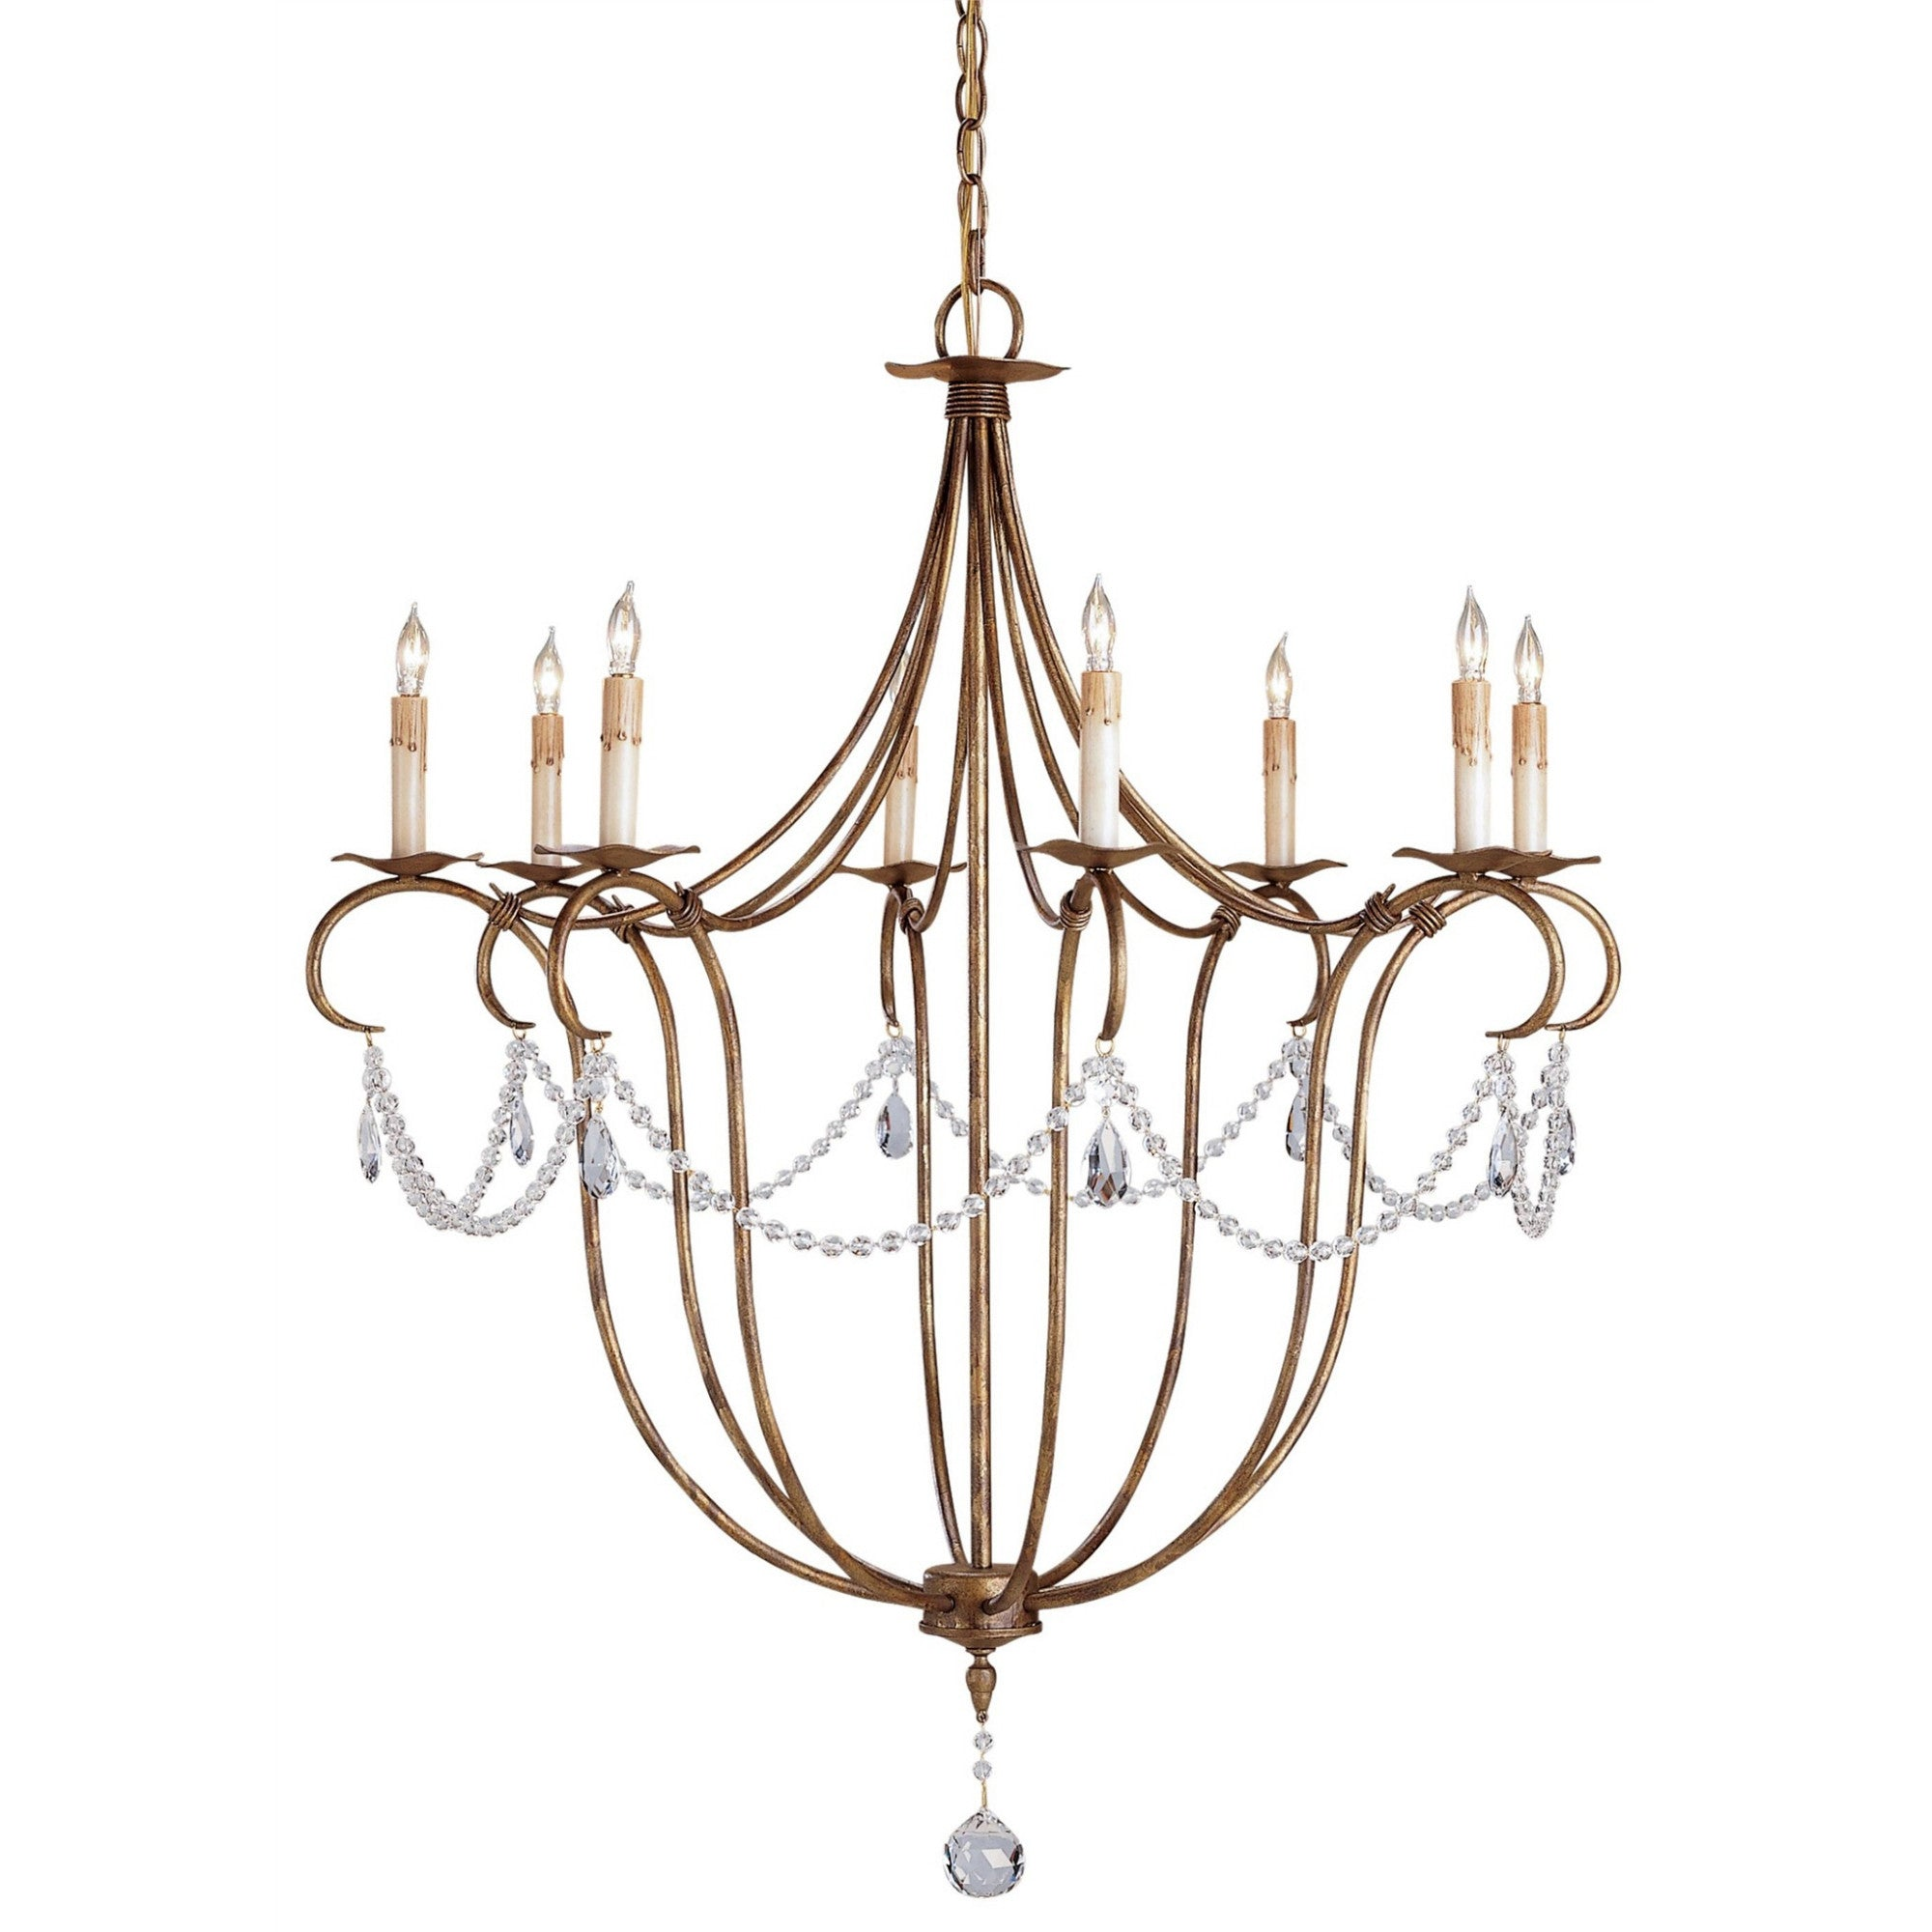 Currey and Co - Crystal Light Chandelier, Large